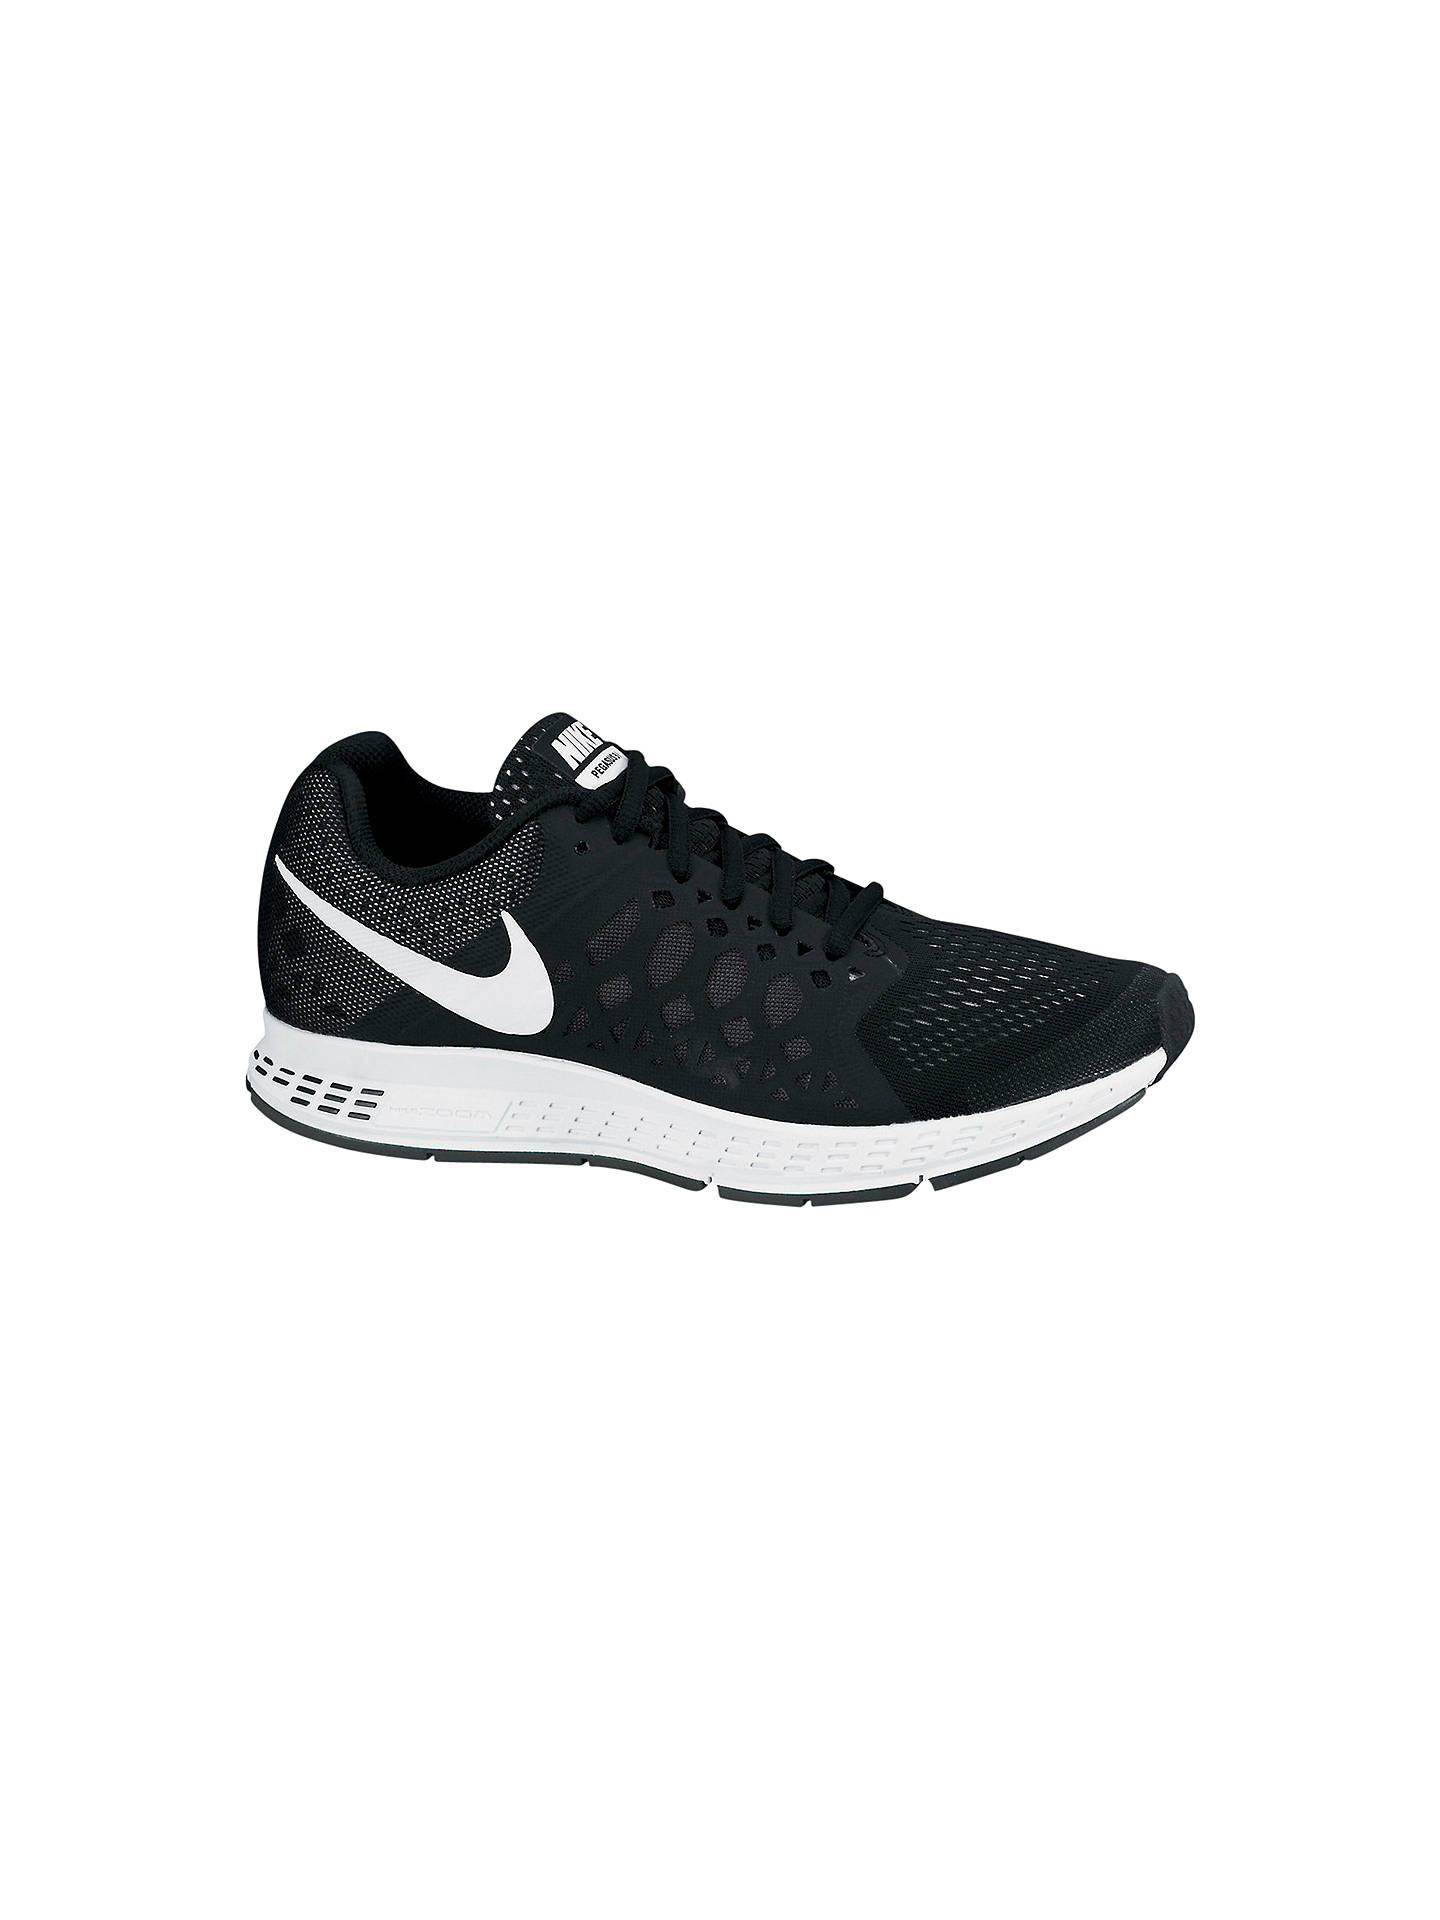 ee8531a21481f Buy Nike Air Zoom Pegasus 31 Women s Running Shoes